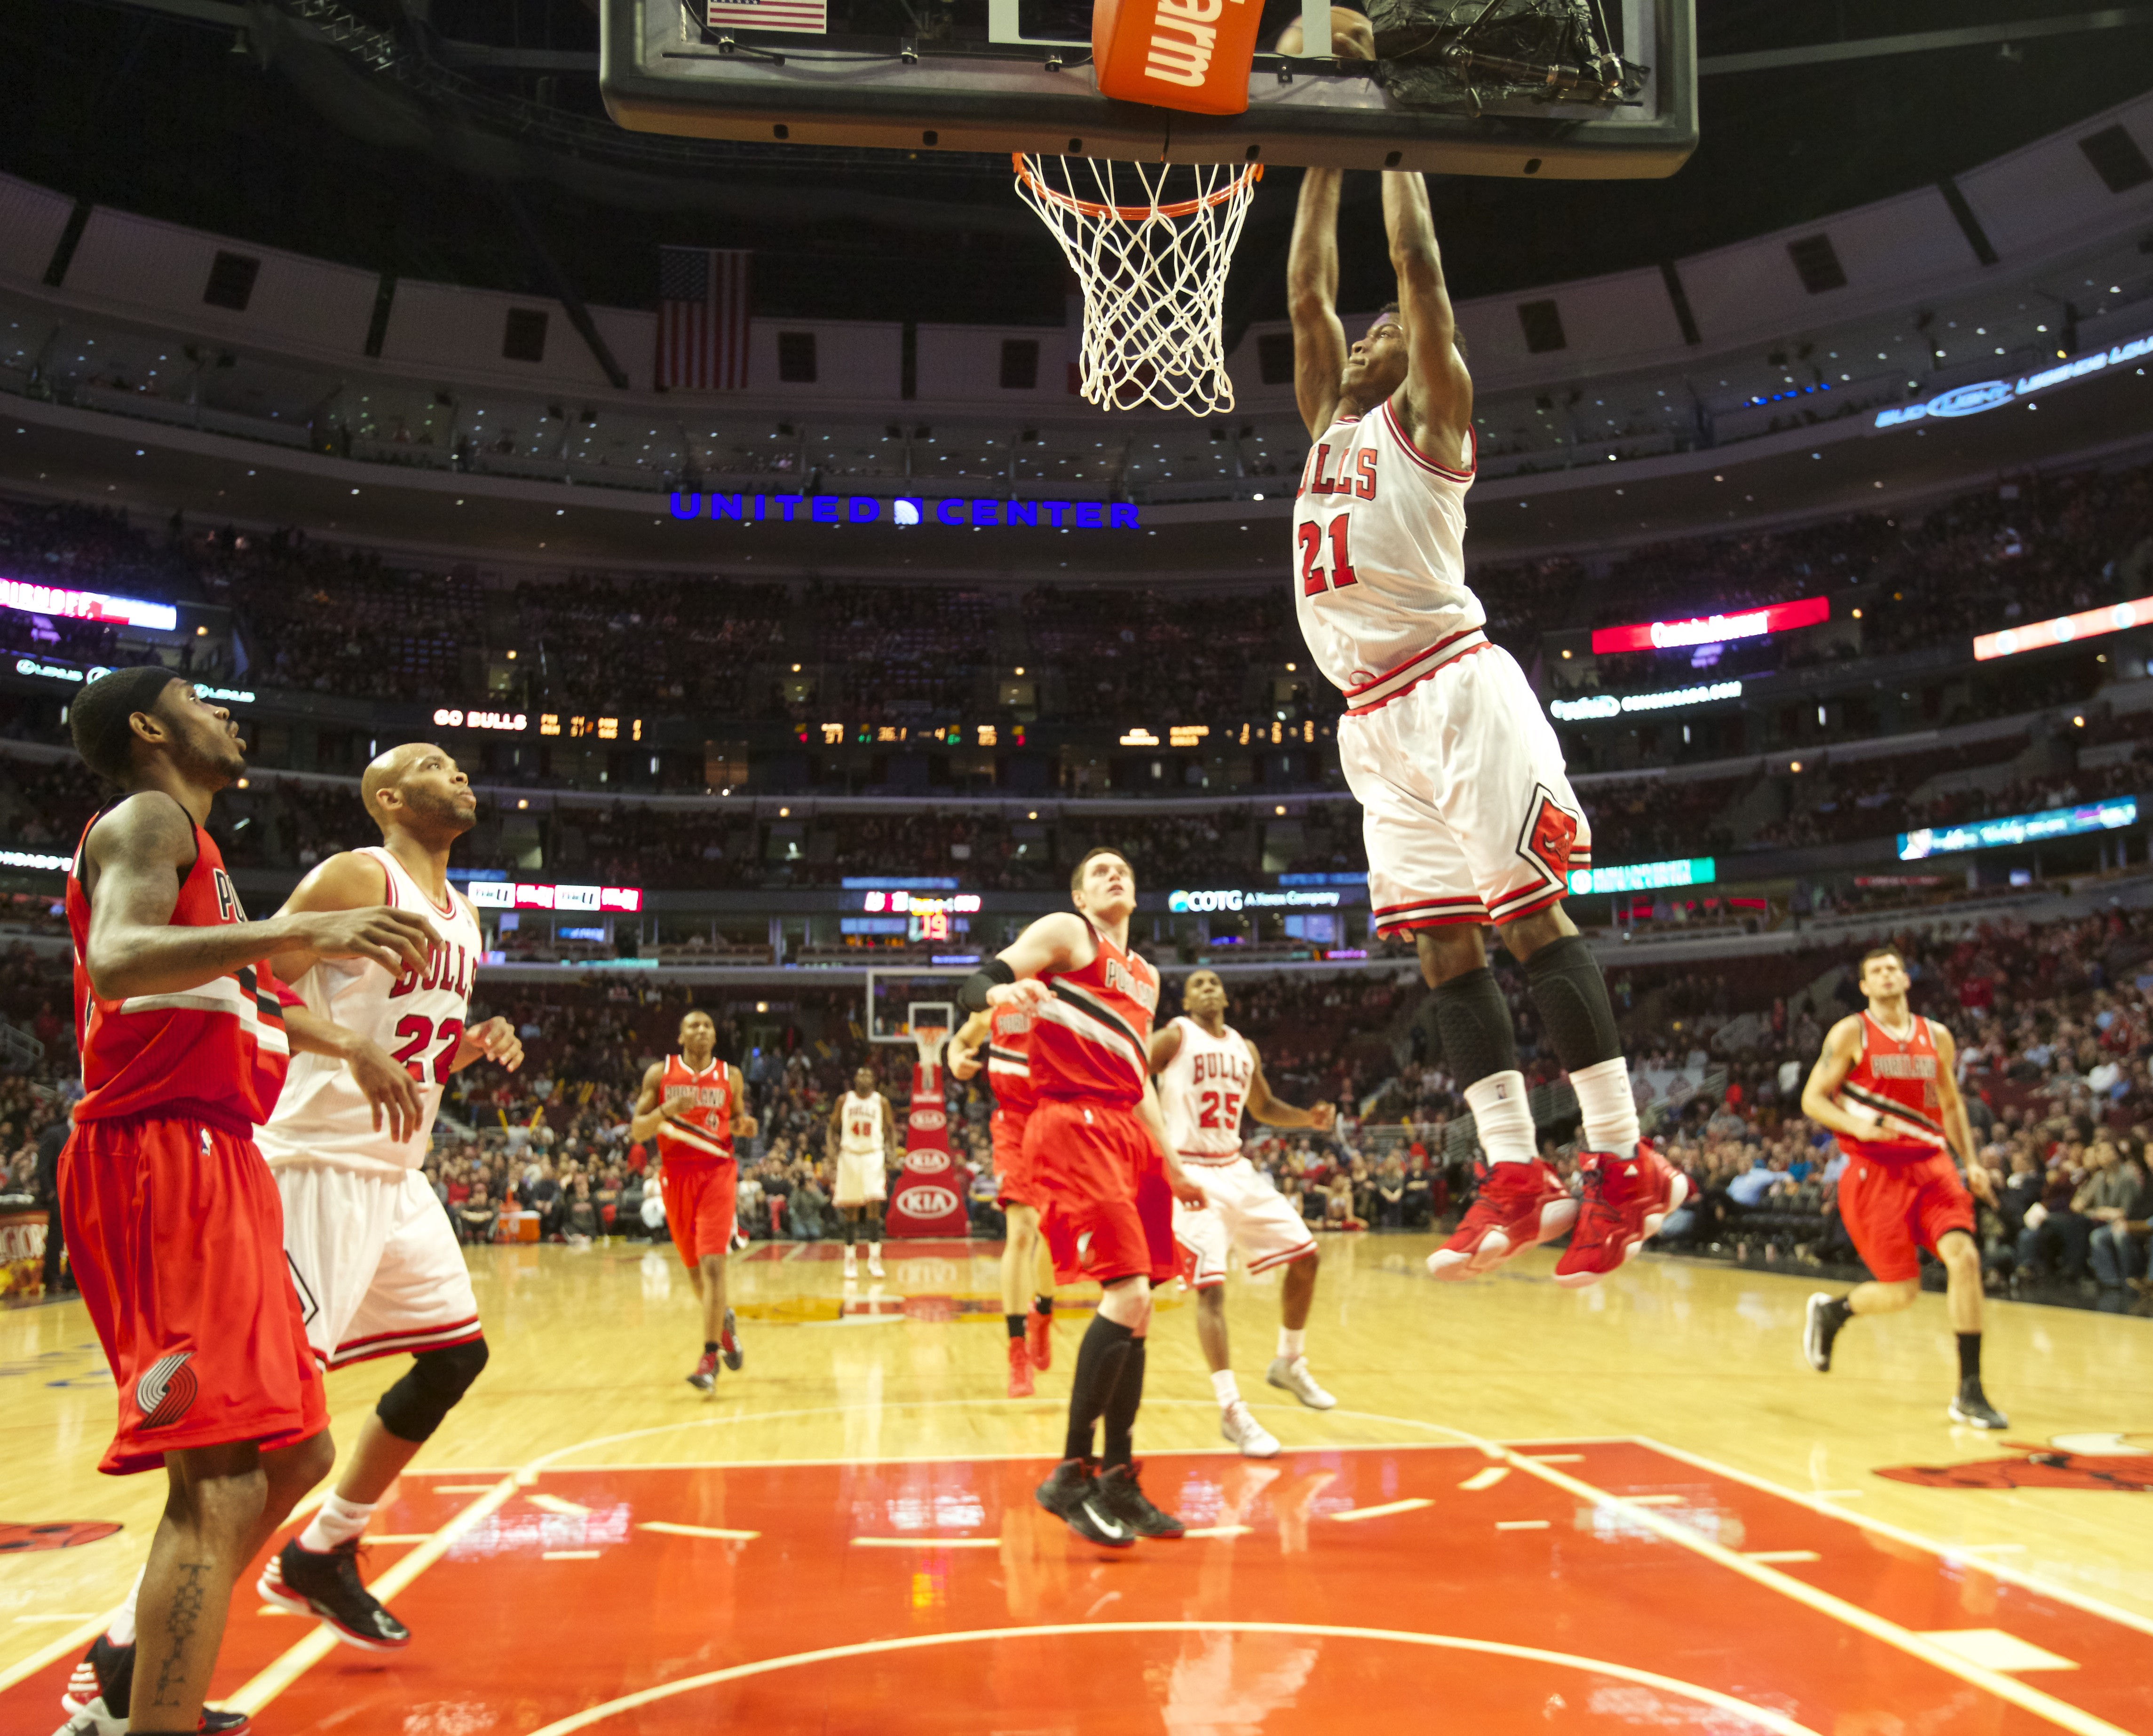 Former Bulls guard Jimmy Butler (21, slam-dunking against the Trail Blazers in 2013) made the playoffs with the Bulls in 2016-17, the Timberwolves in 2017-18 and the 76ers in 2018-19. He is averaging 20.2 points, 7.0 rebounds and 6.4 assists for the Heat this season.